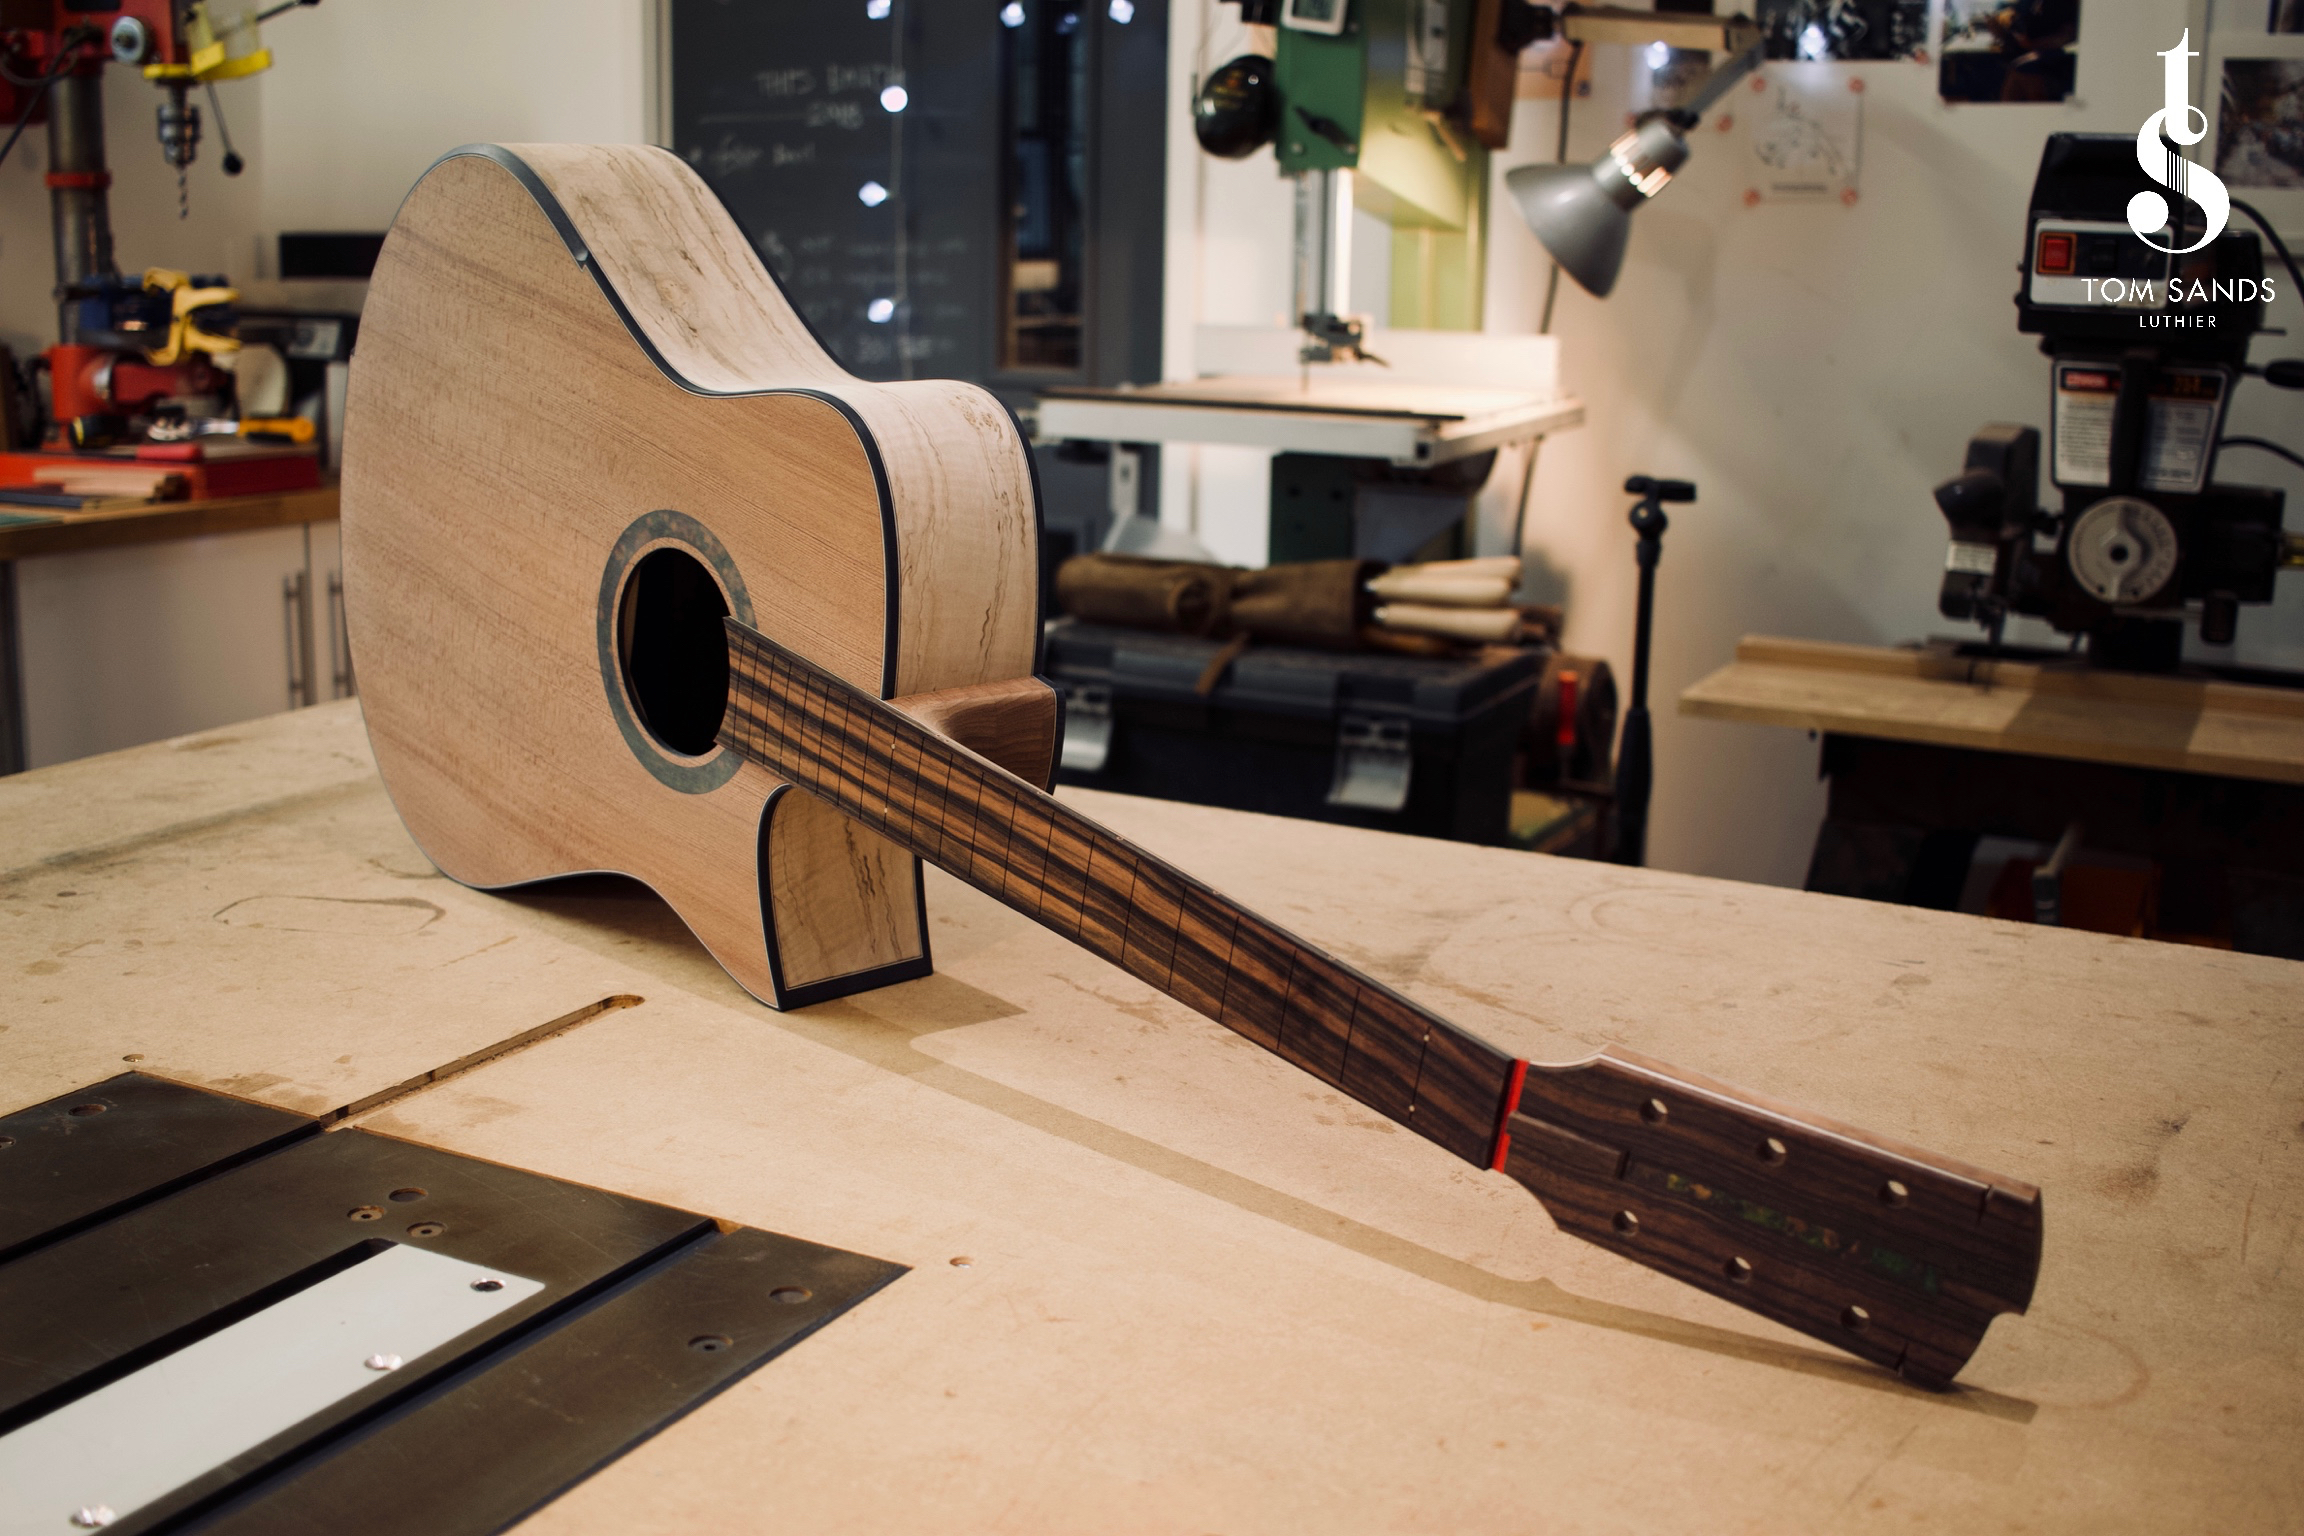 Macassar ebony fingerboard and patinated green ebony rosette. with matching Macassar ebony head plate and patinated green copper headstock inlay.